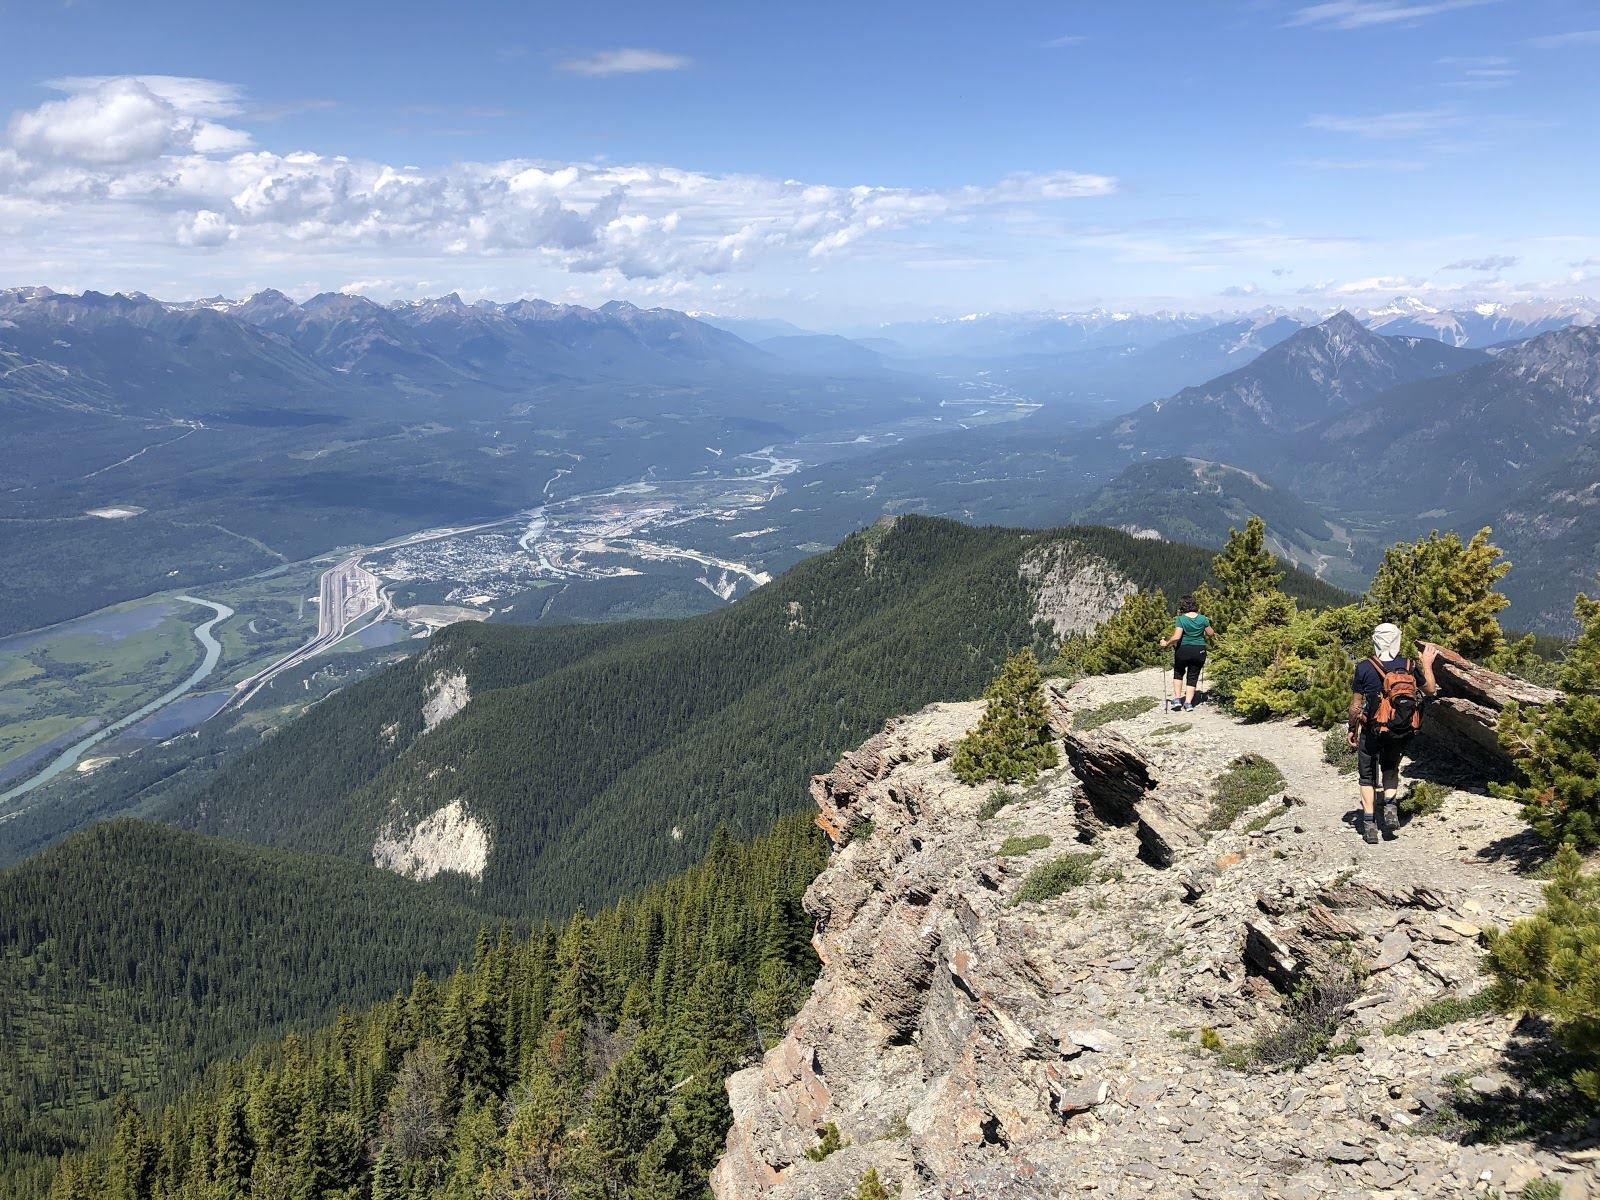 hiking up mount 7 in golden bc